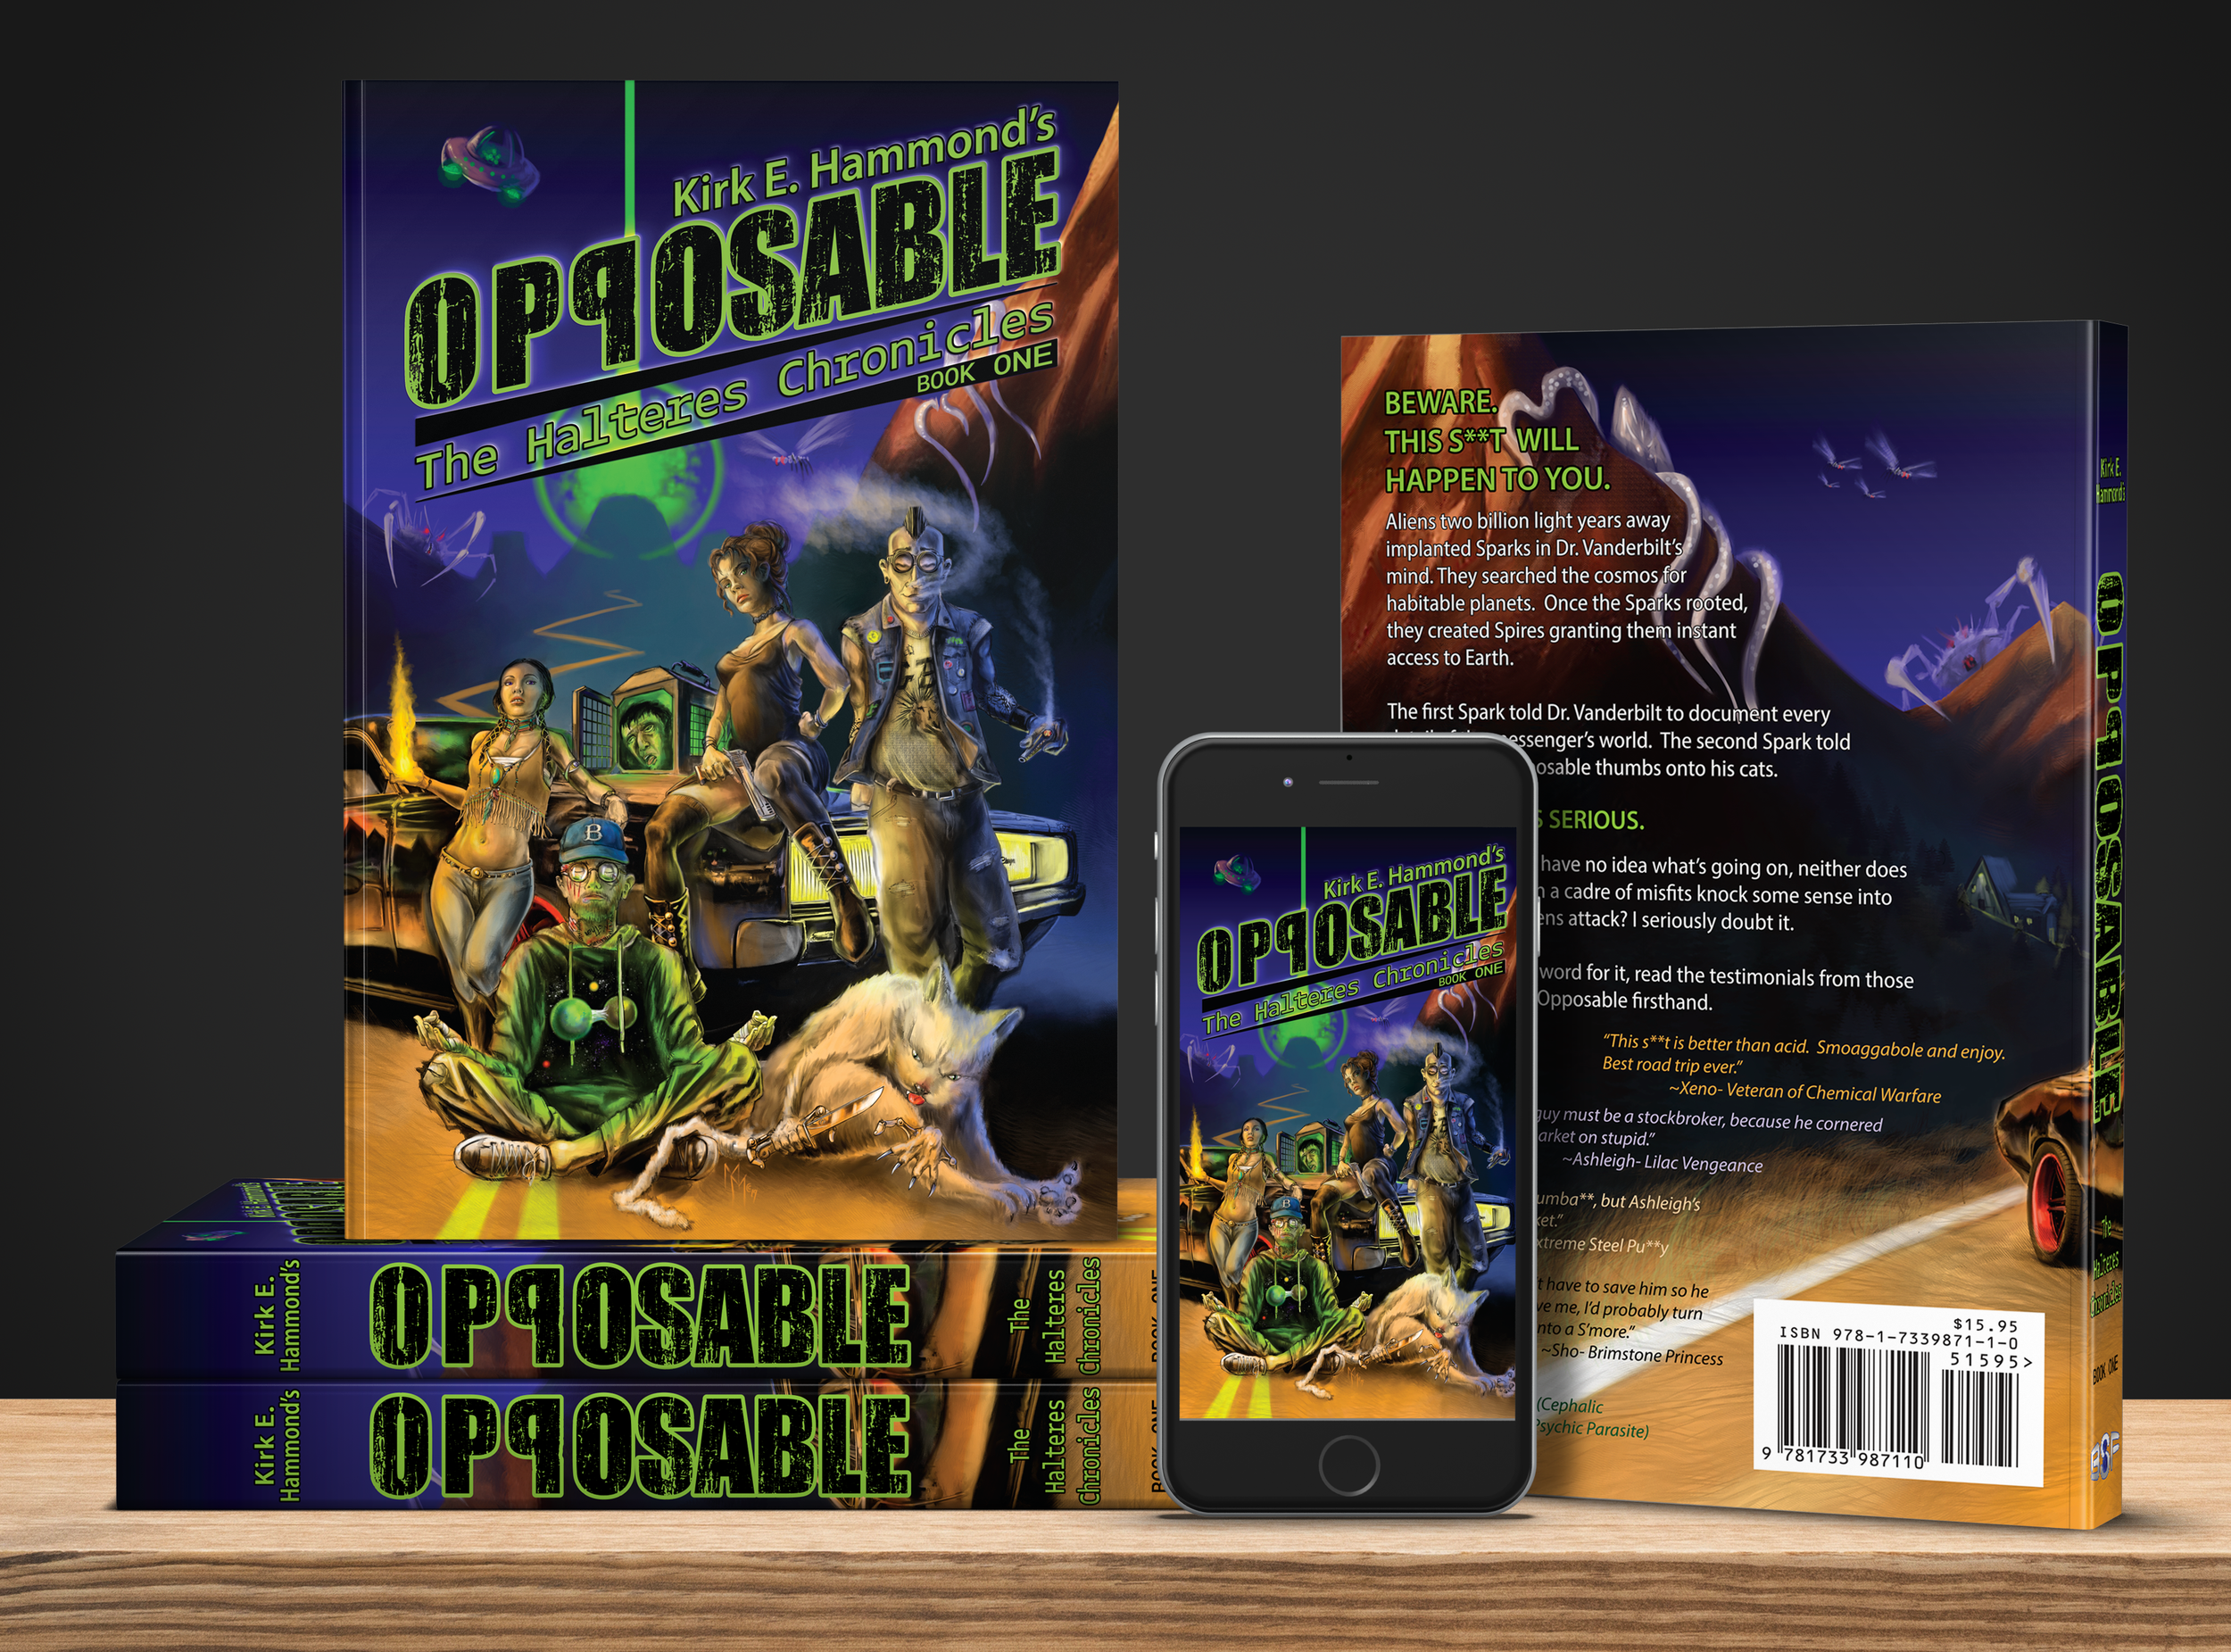 Opposable-mockup.png